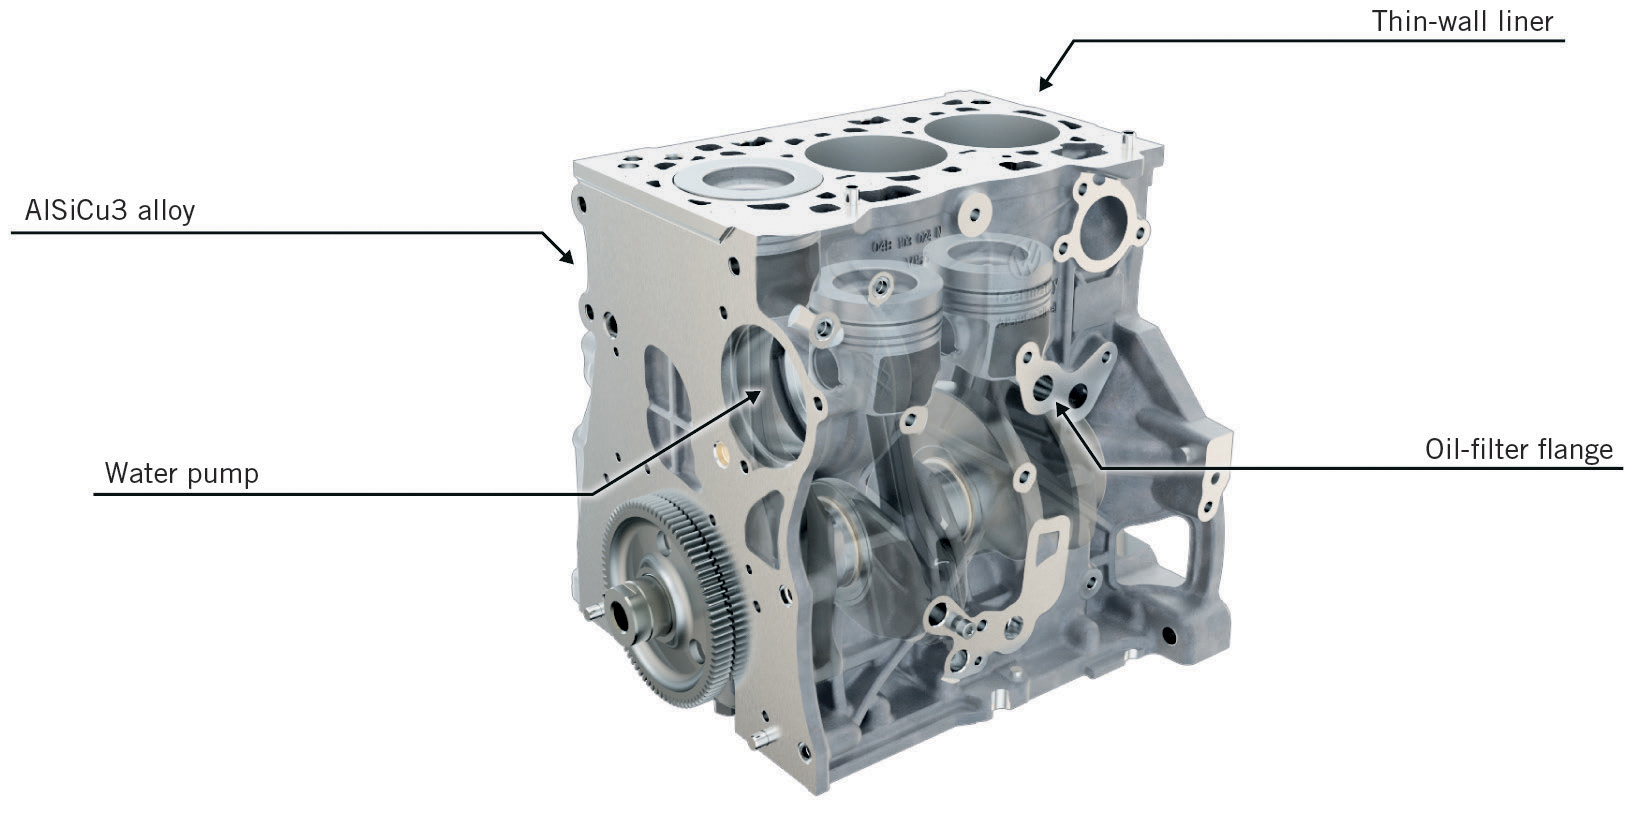 The New Three-Cylinder Engine from Volkswagen's Modular